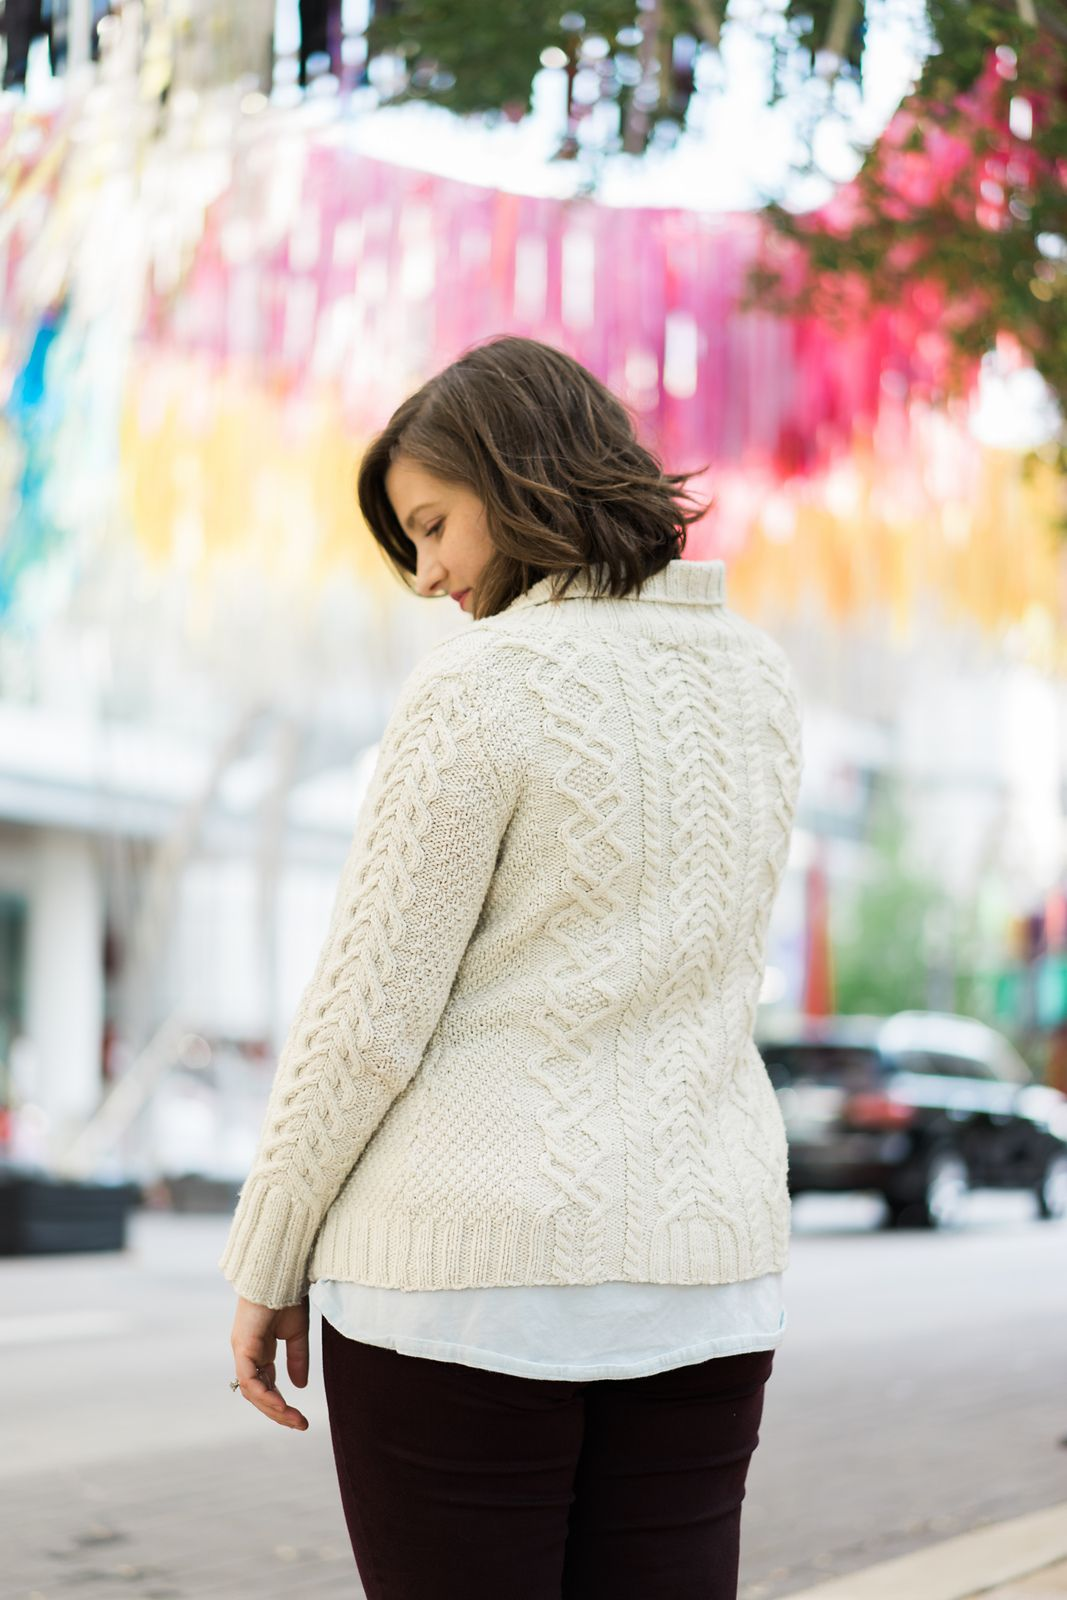 Christina in a cream-colored handknit cabled cardigan